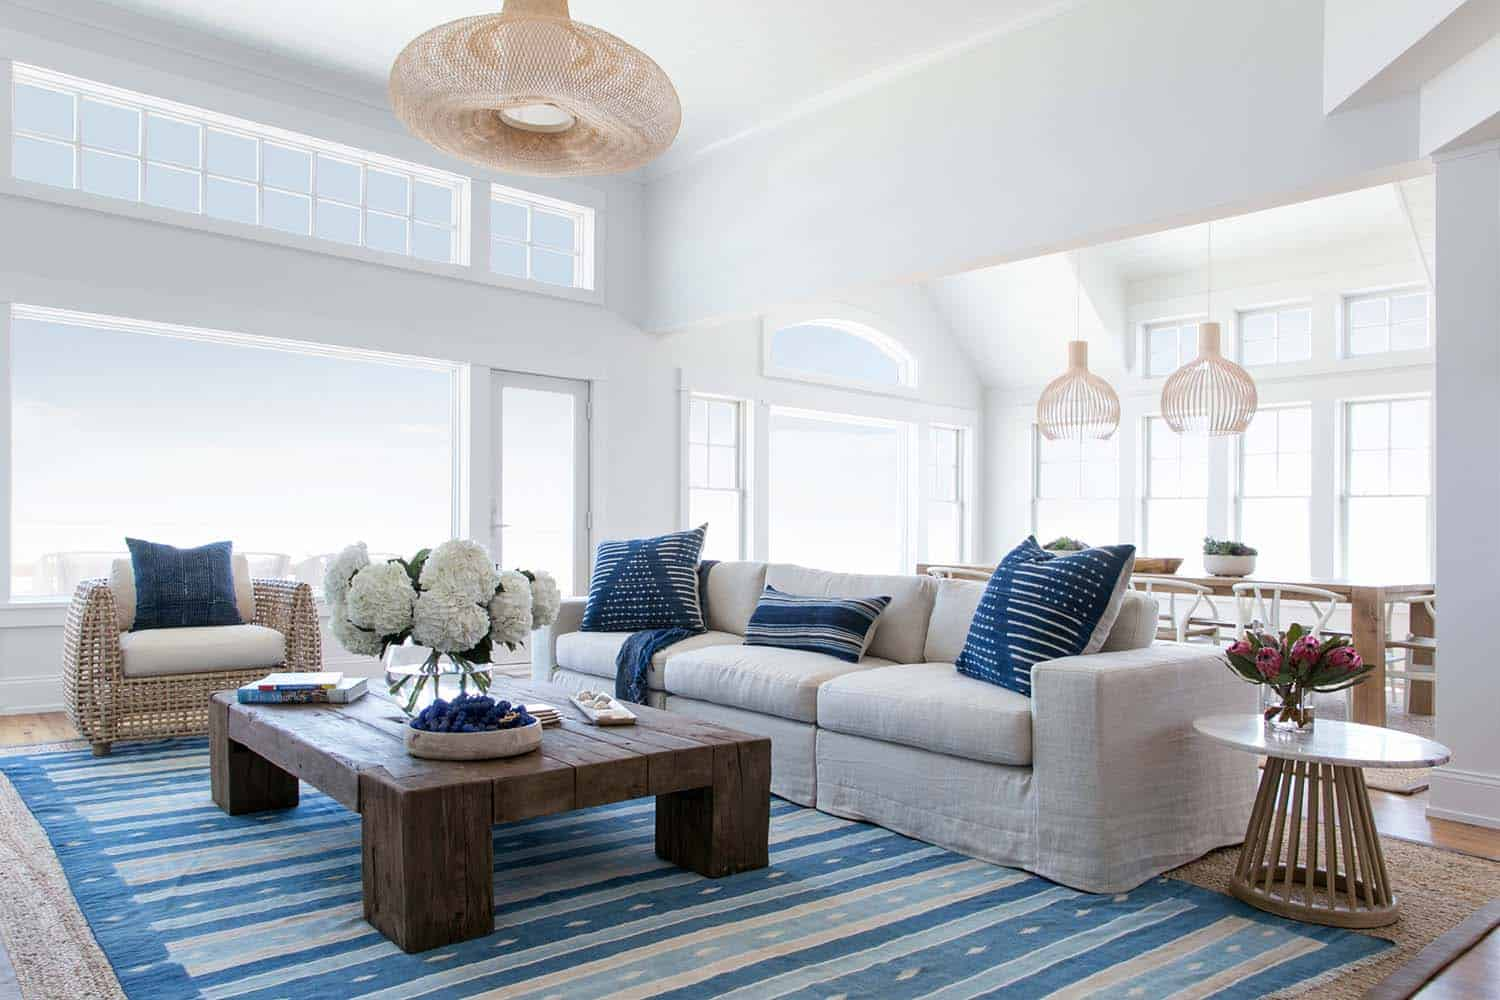 Luminous Coastal-chic Home Offers A Relaxed Vibe In Beach